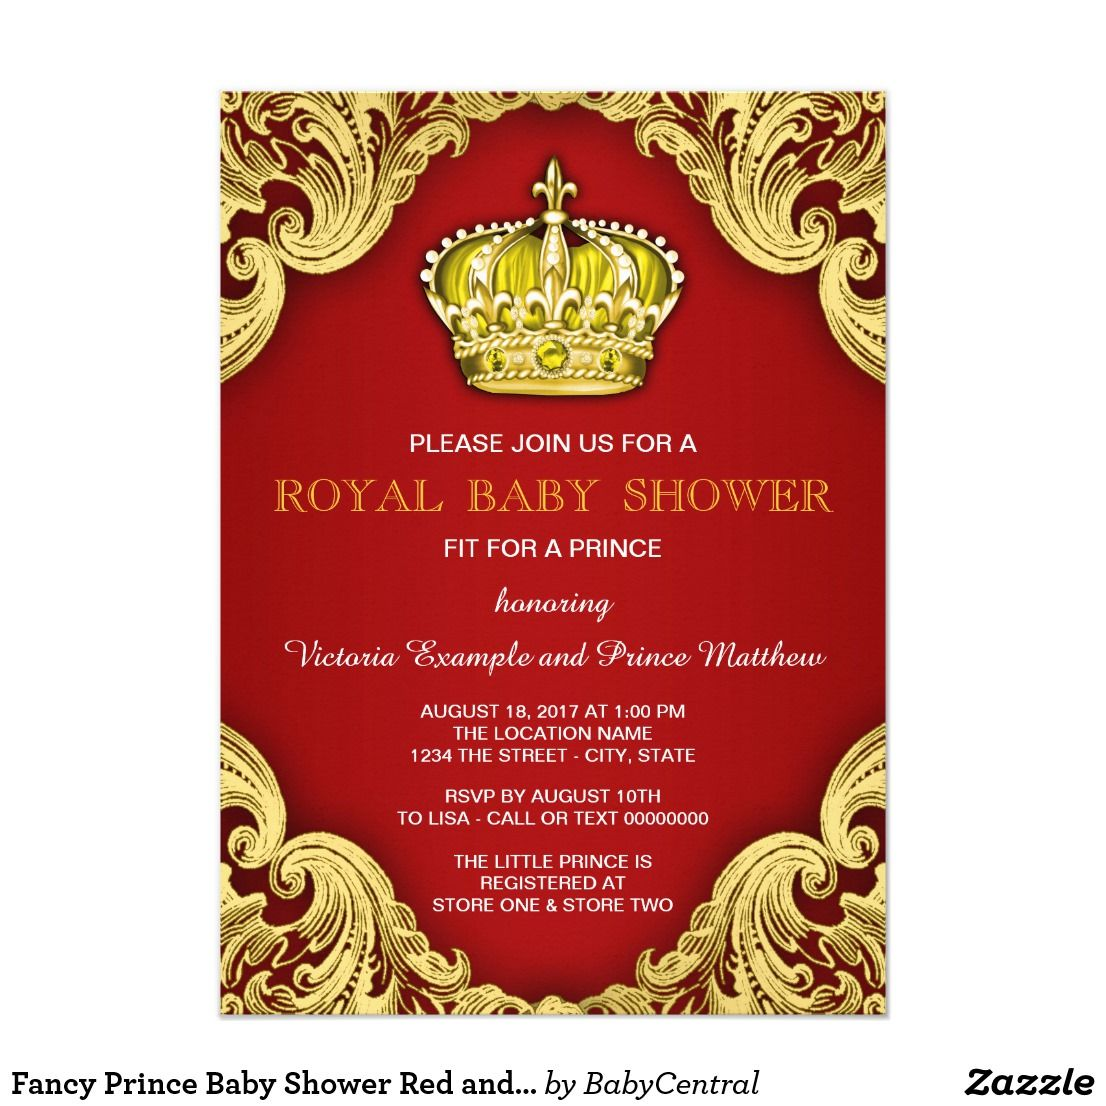 Fancy Prince Baby Shower Red and Gold Invitation | Fancy, Babies and ...